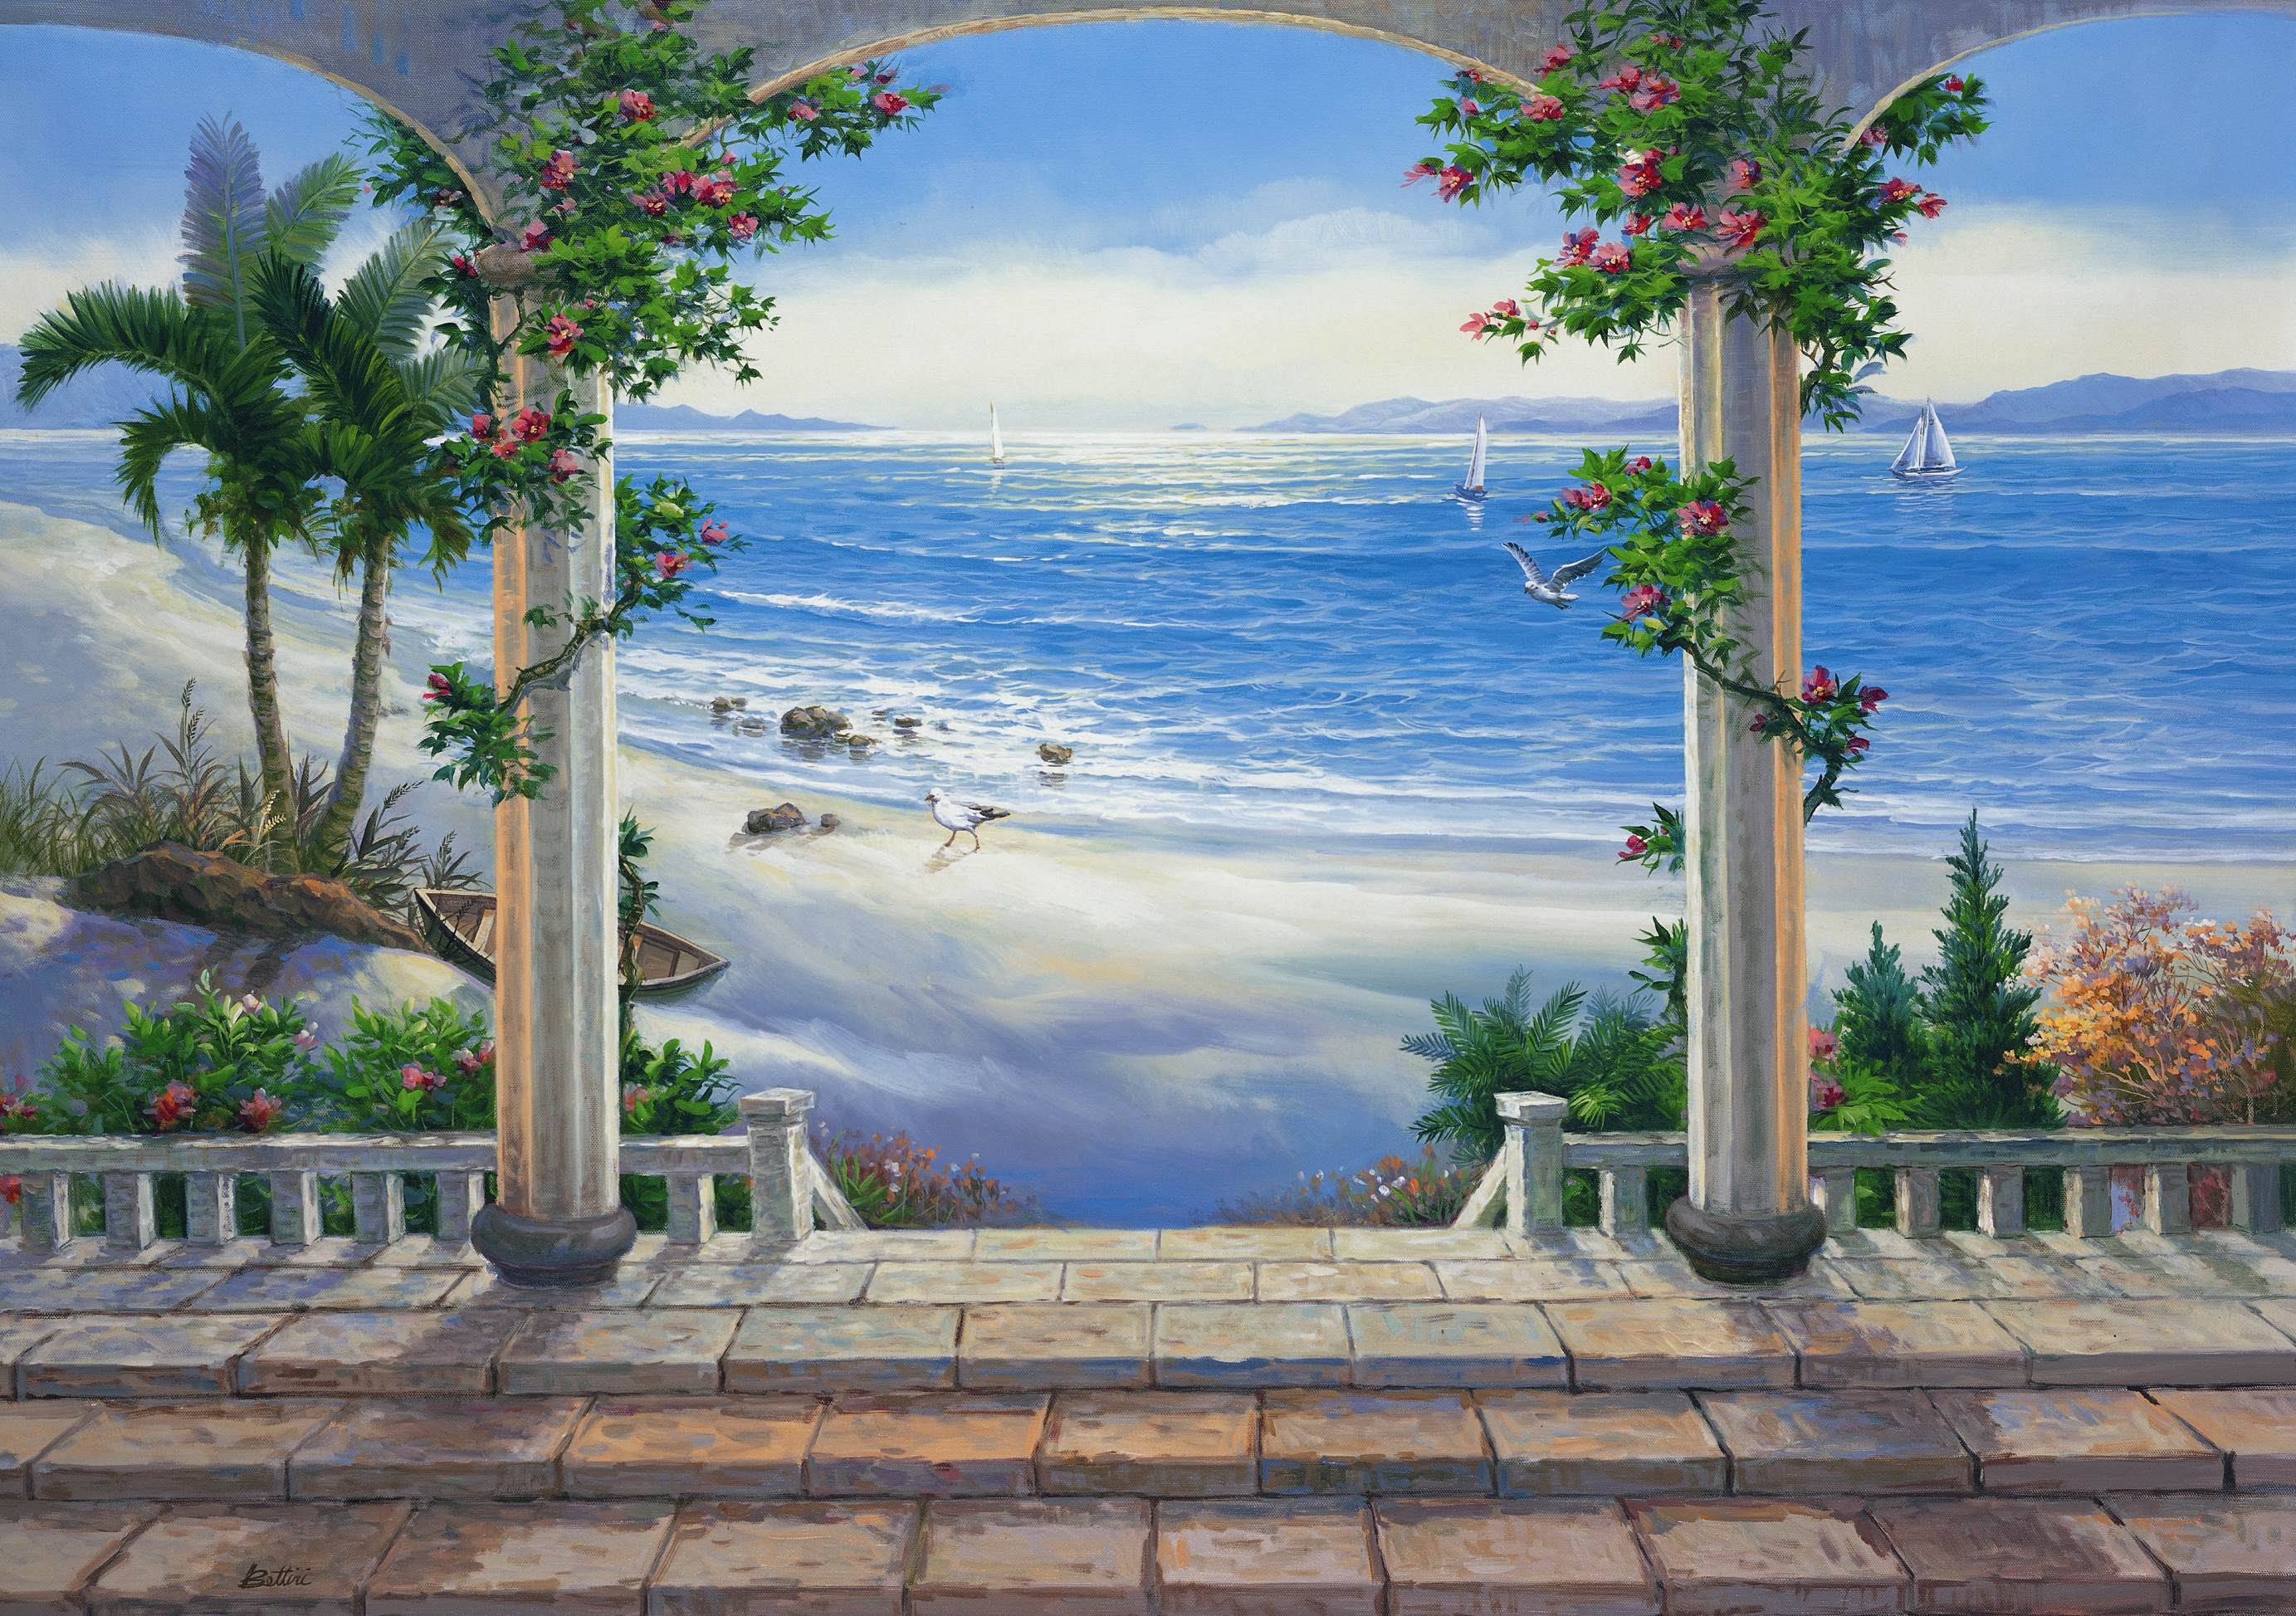 3d wall murals for walls download wallpaper free for 3d mural wall